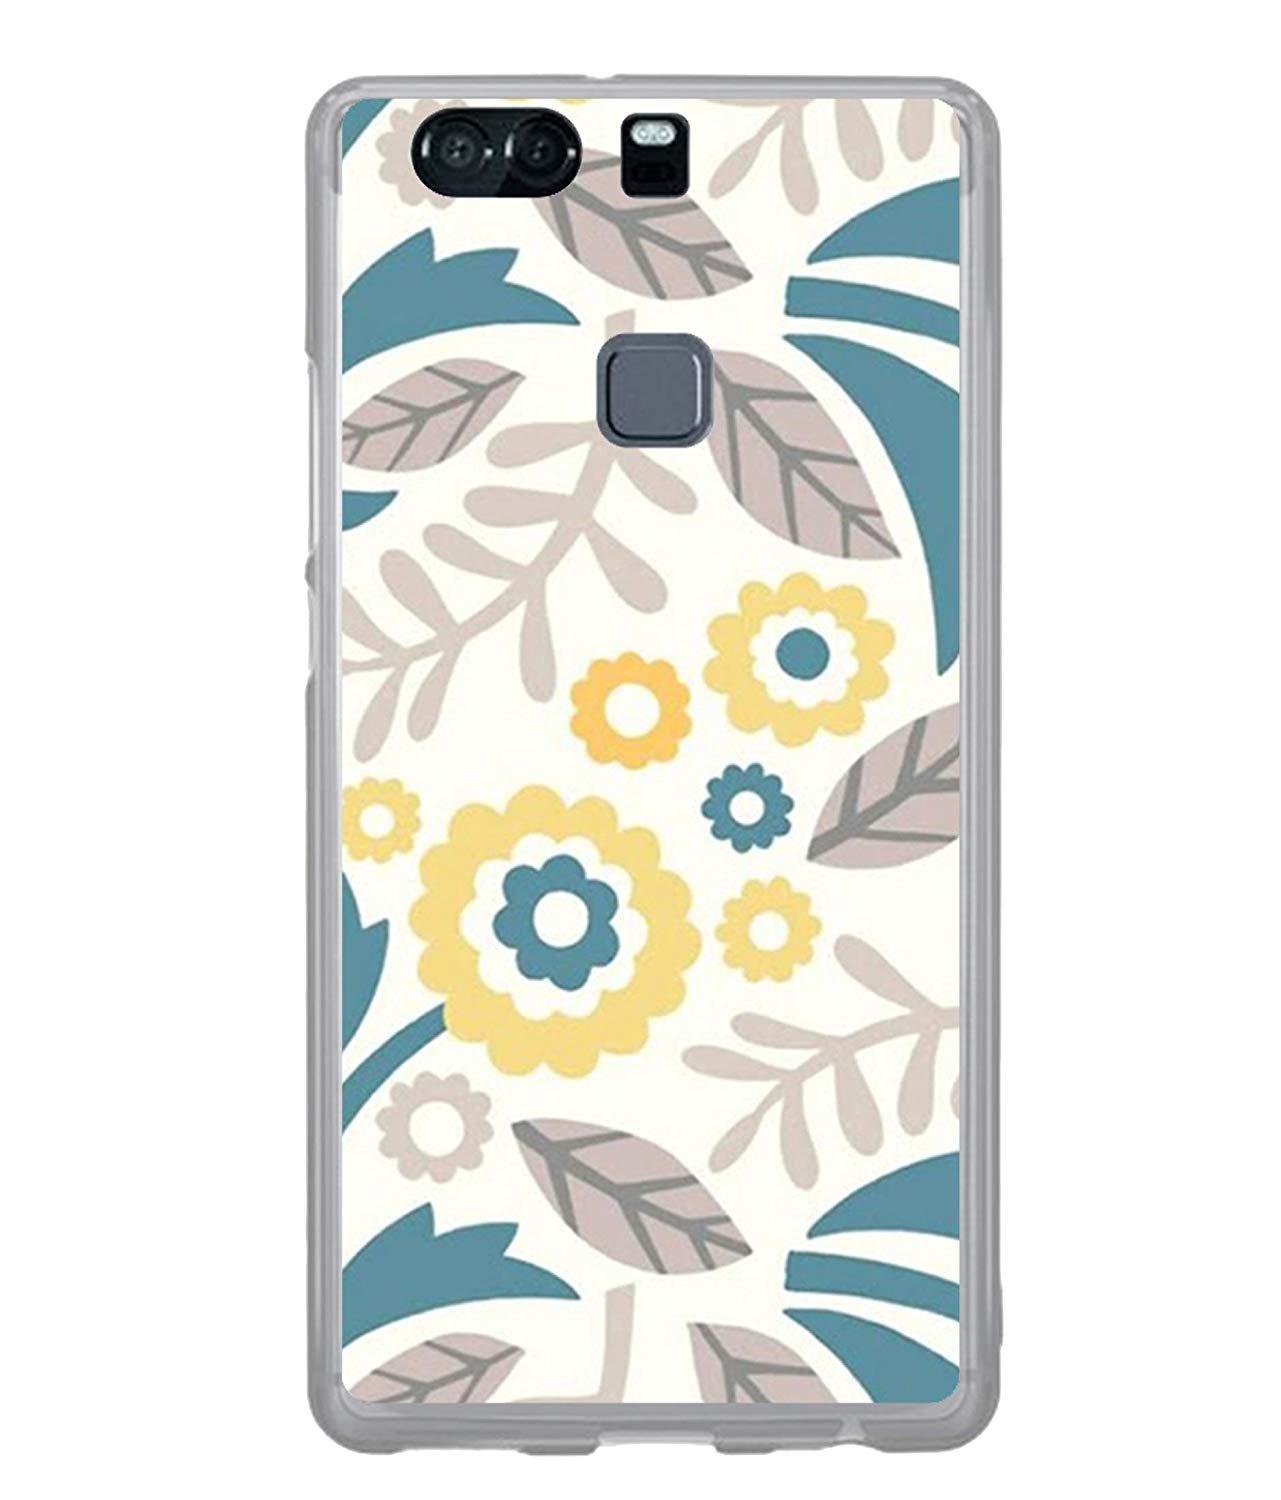 Fuson Designer Back Case Cover for Huawei P9: Amazon.in.